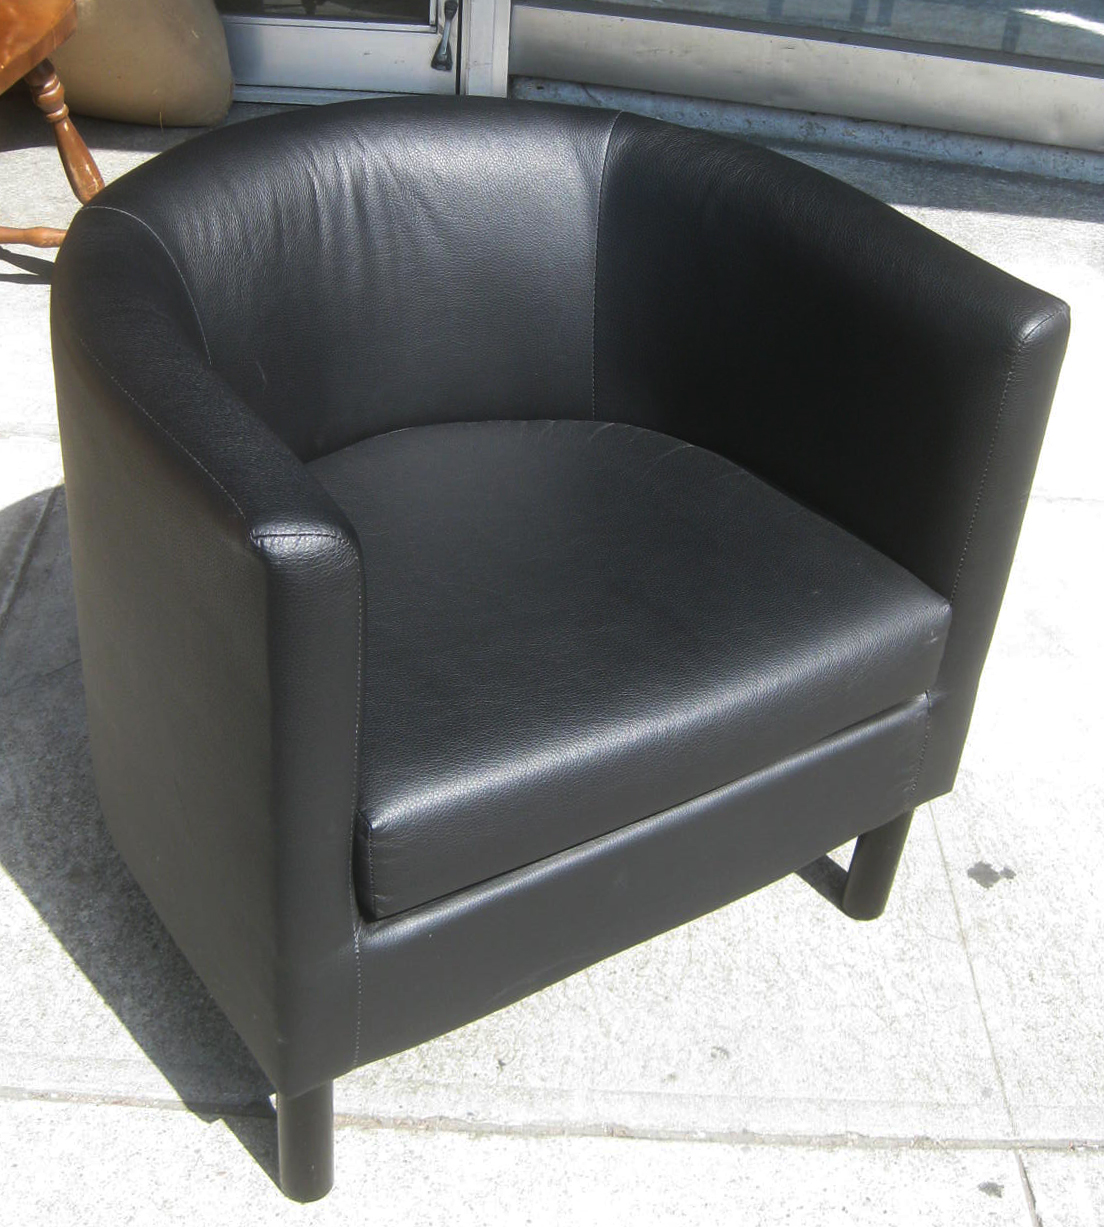 uhuru furniture collectibles sold ikea leather chair. Black Bedroom Furniture Sets. Home Design Ideas